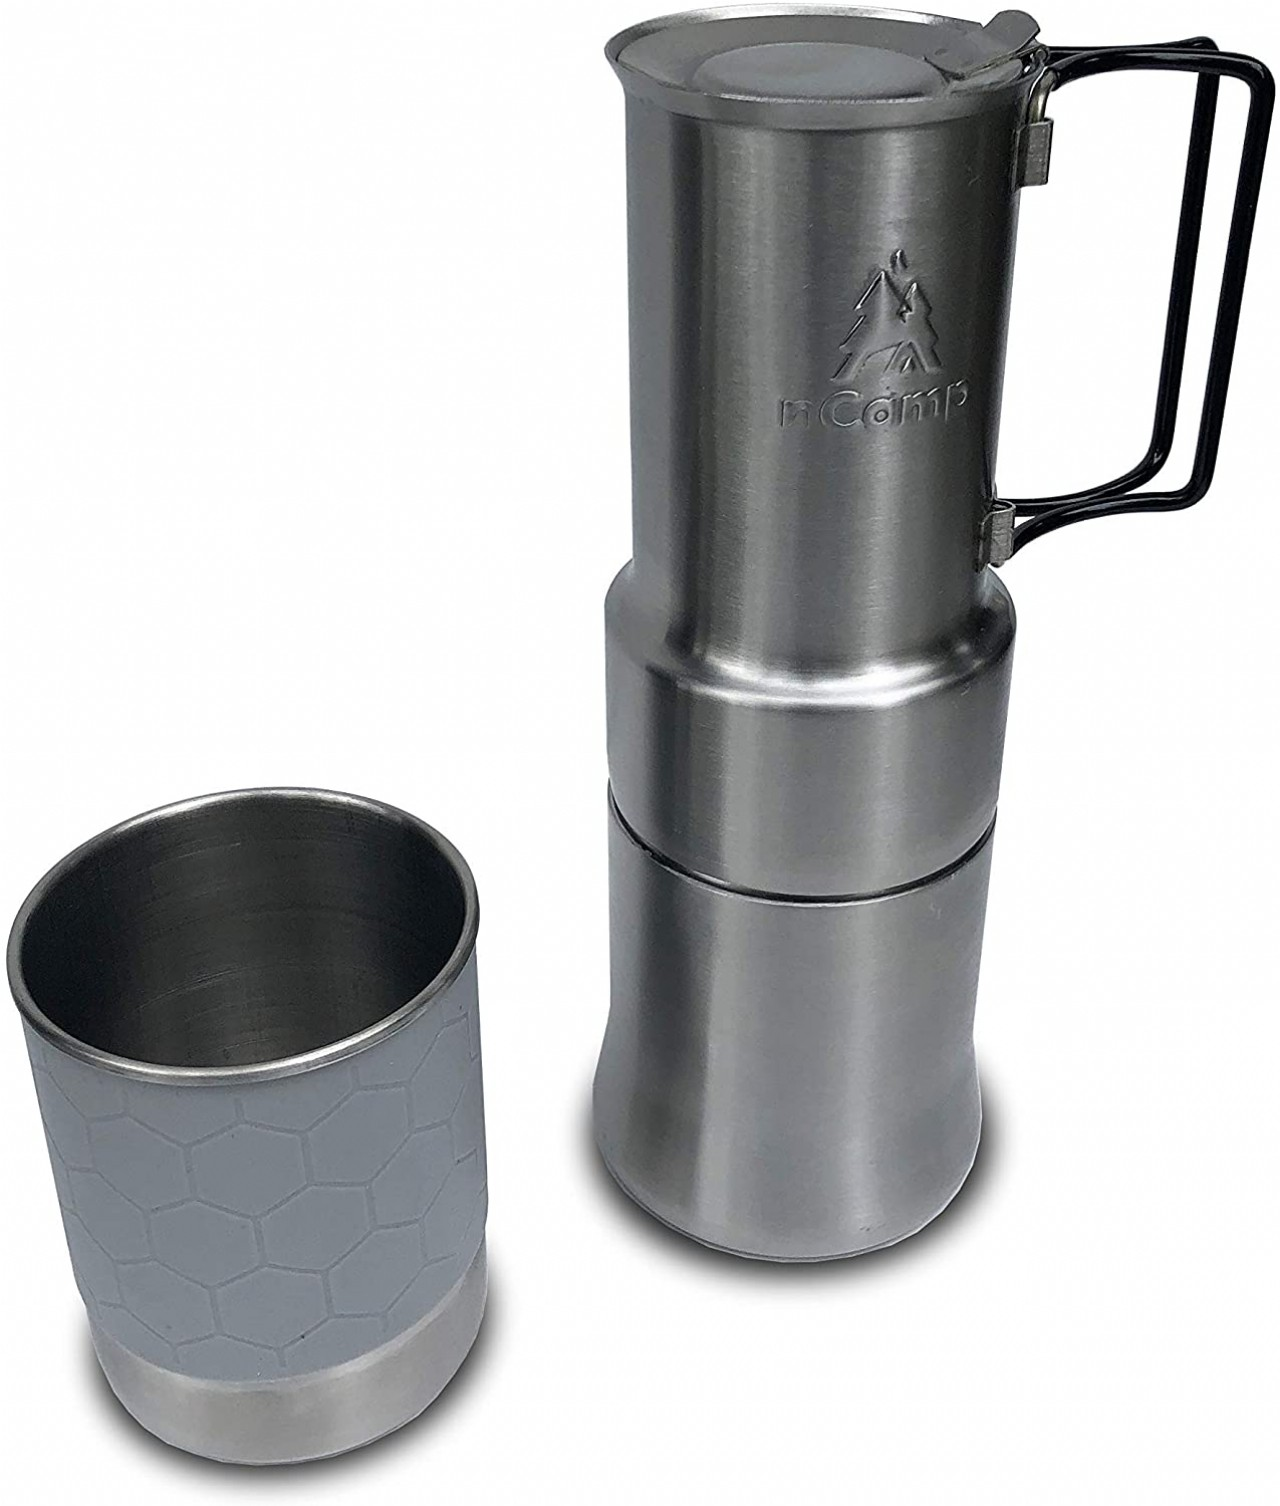 nCamp Portable Camping Coffee Maker, Compact Espresso Style, Stainless Steel Stovetop Cafe Gear